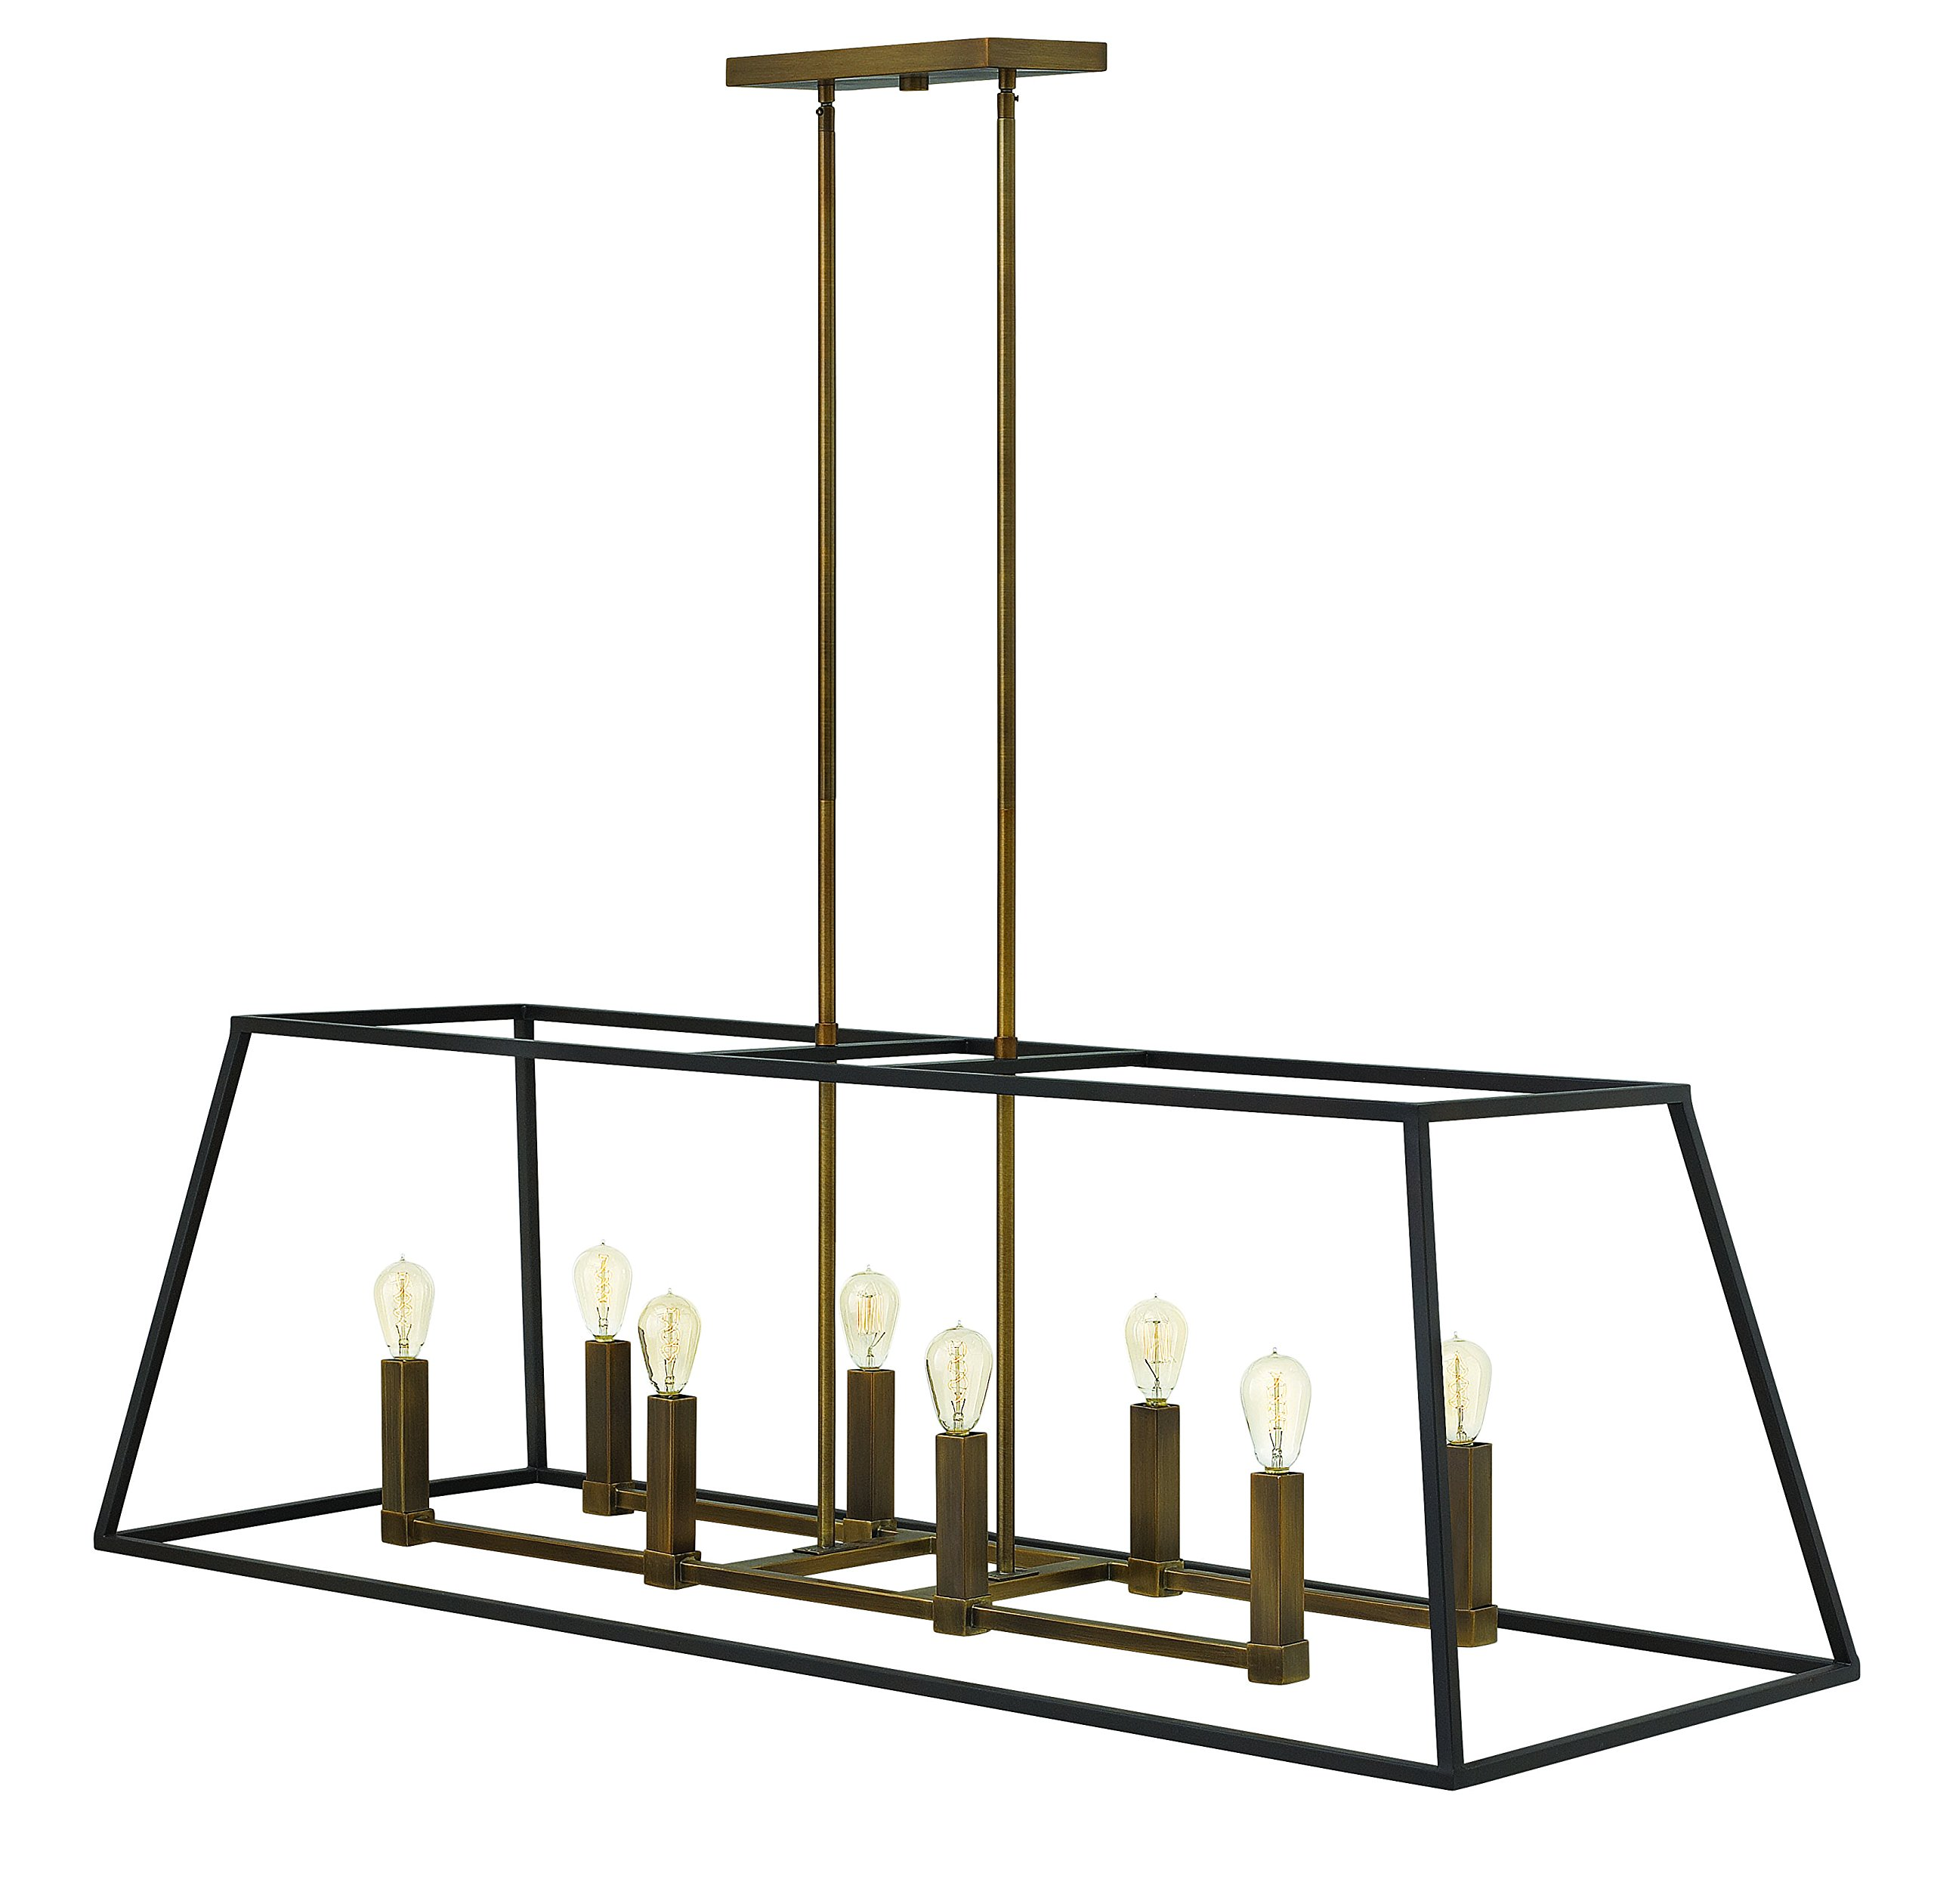 Hinkley 3338BZ Restoration Eight Light Stem Hung Linear from Fulton collection in Bronze/Darkfinish, by Hinkley (Image #1)